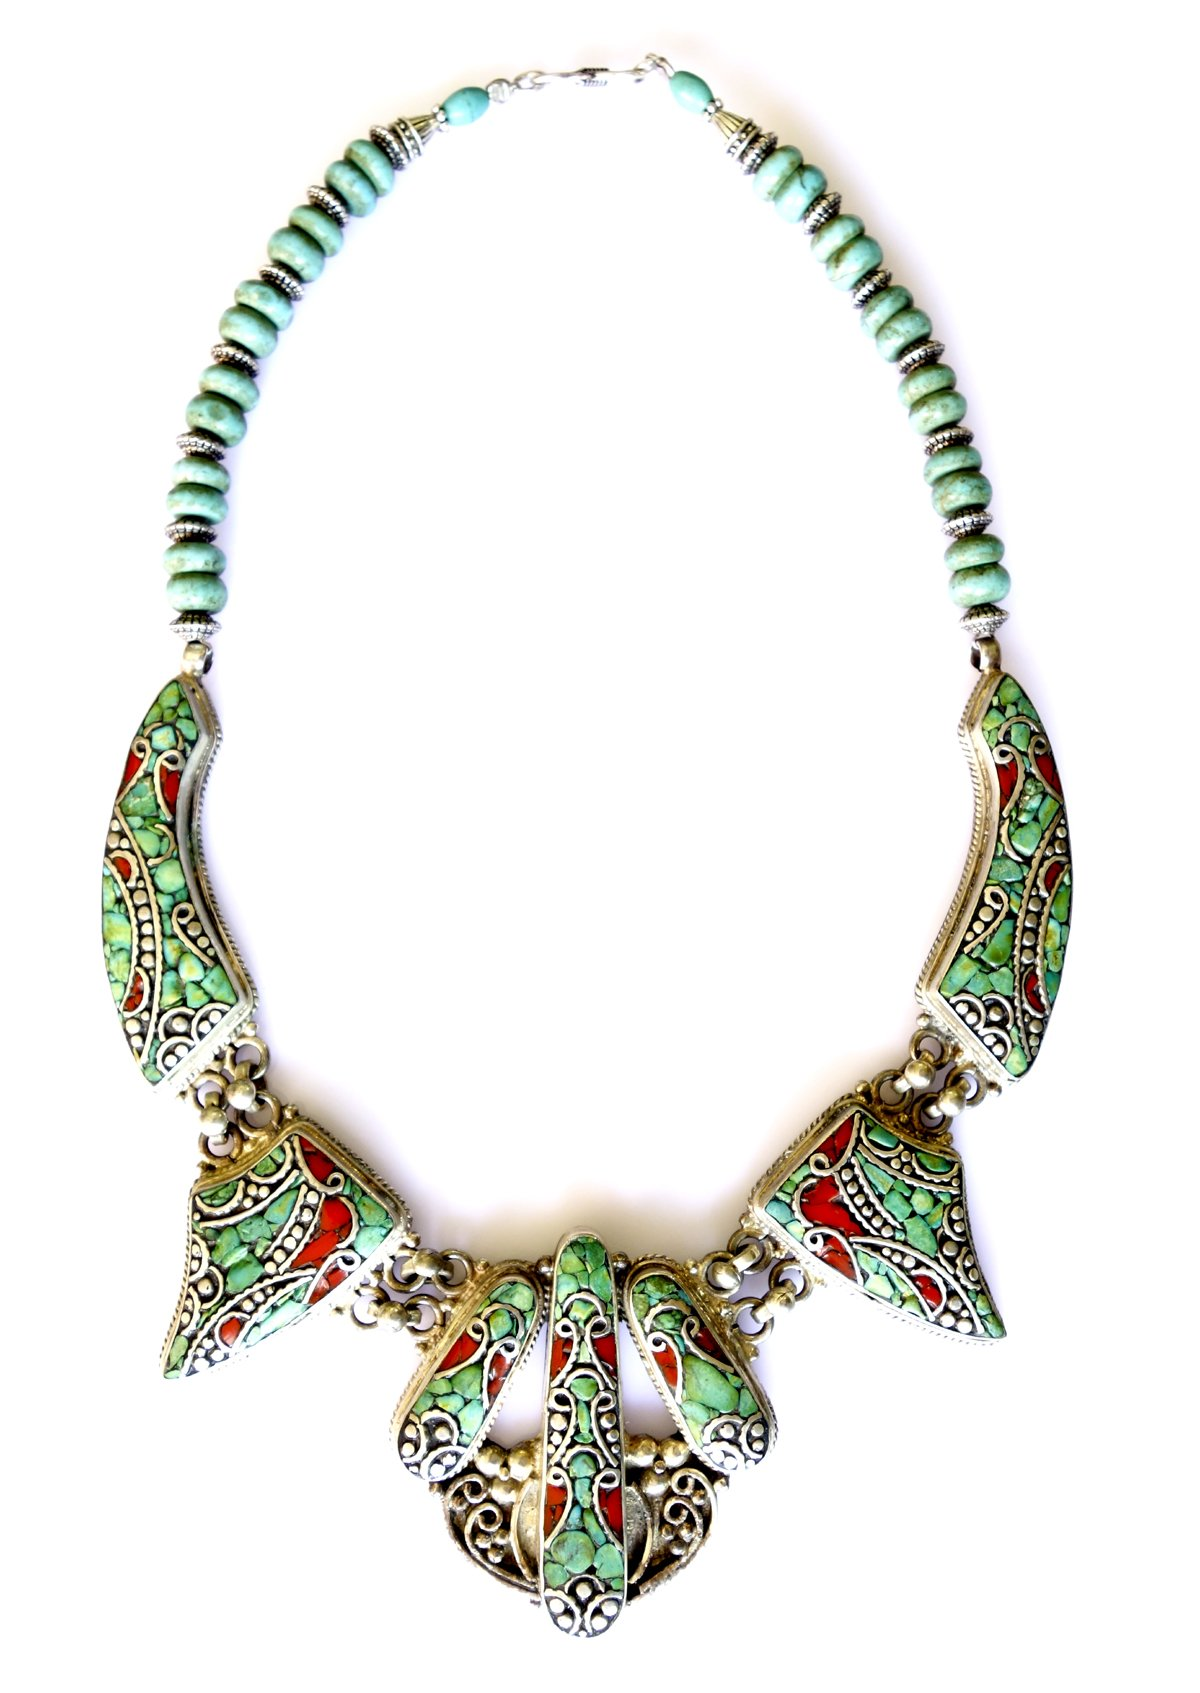 CORAL & TURQUOISE GEMSTONE HANDMADE NECKLACE FOR WOMEN BUDDHIST BOHEMIAN TRIBAL NECKLACE BY TIBETAN SILVER